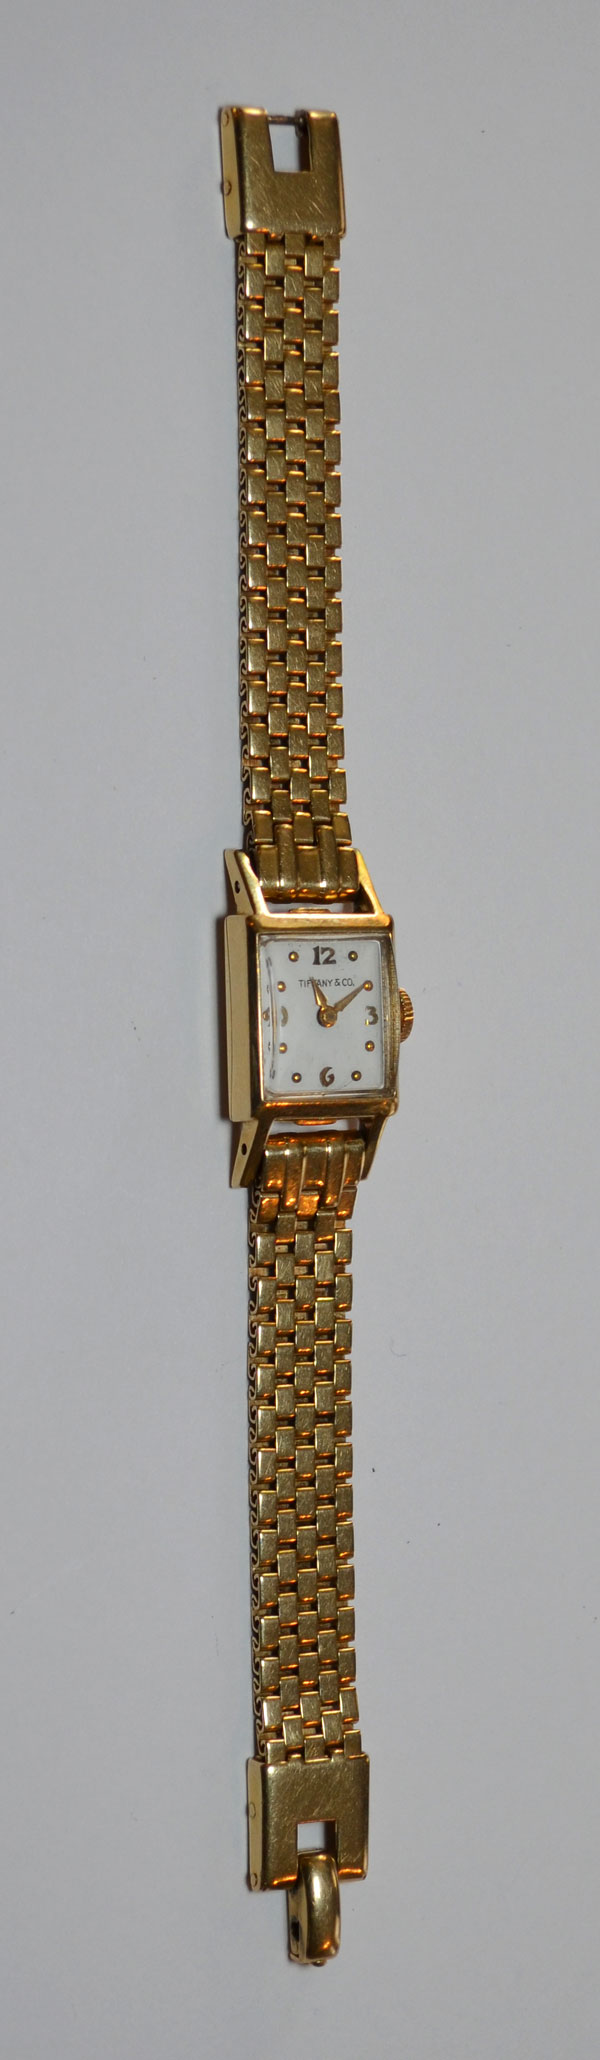 Charming Vintage Tiffany & Co. 14k Gold Watch